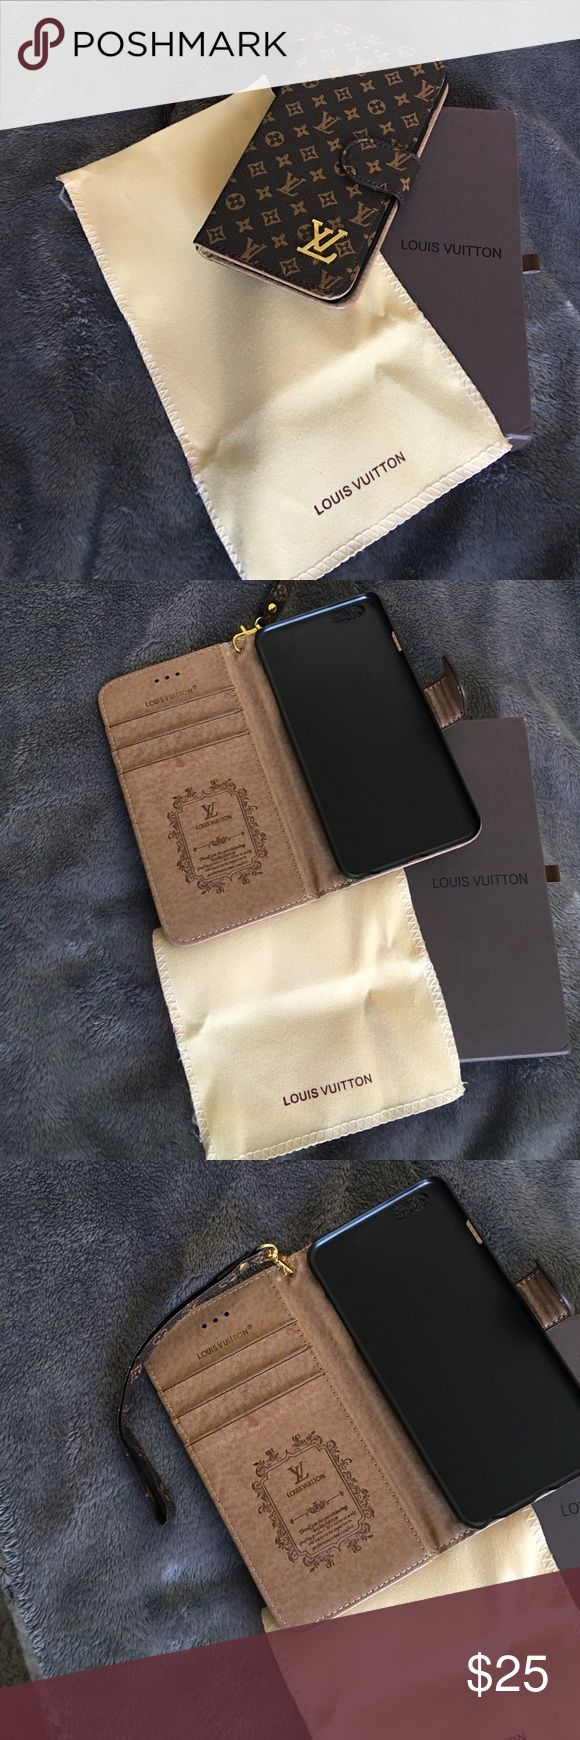 Wristlet iPhone 6 Plus or 6s plus case Designer inspired iPhone 6plus or 6s plus phone case wristlet with three credit card holders and a side pocket for receipts, miscellaneous etc...brand new never used comes with dust bag and box. Price firm. No trades.  There is a slight discoloration I took a picture of that is in the faux leather it was bought that way. I reflect that in the price. Accessories Phone Cases